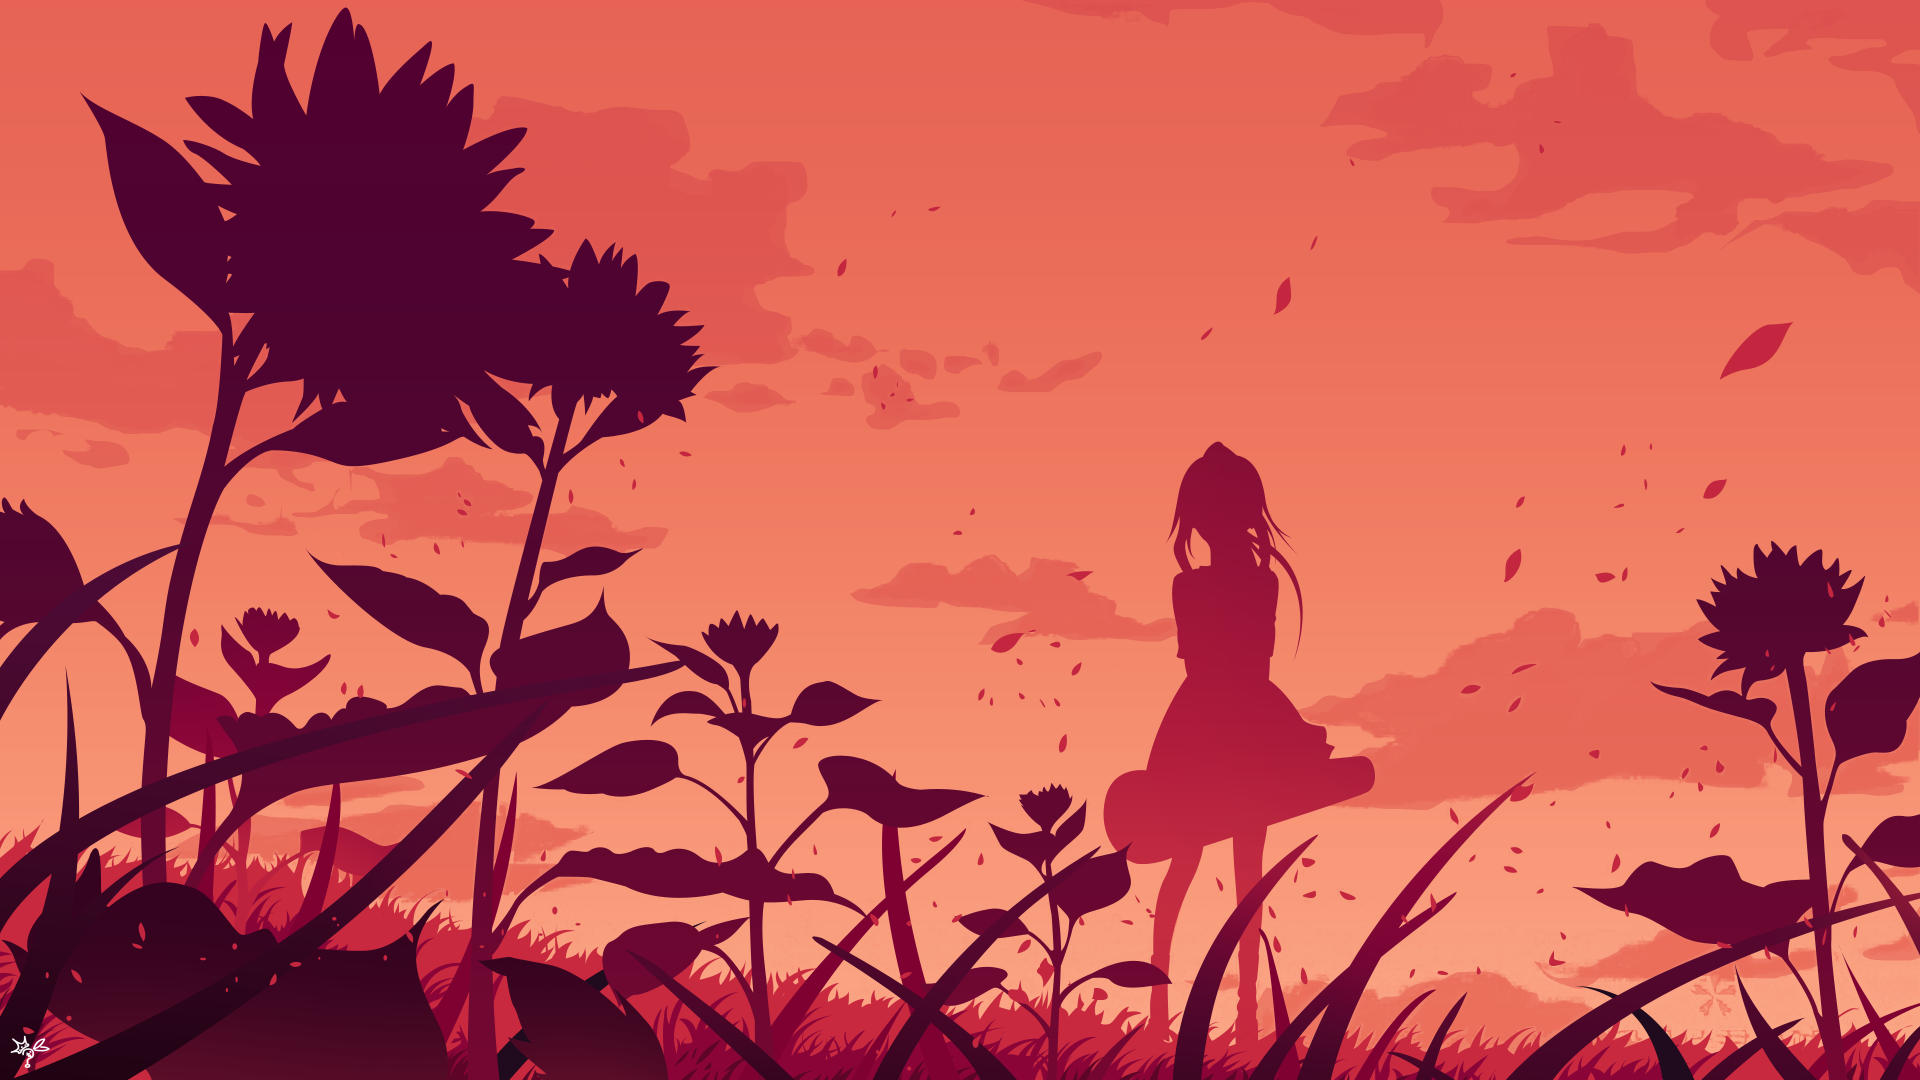 Anime - Your Lie In April  Orange Kaori Miyazono Flower Silhouette Girl Wallpaper